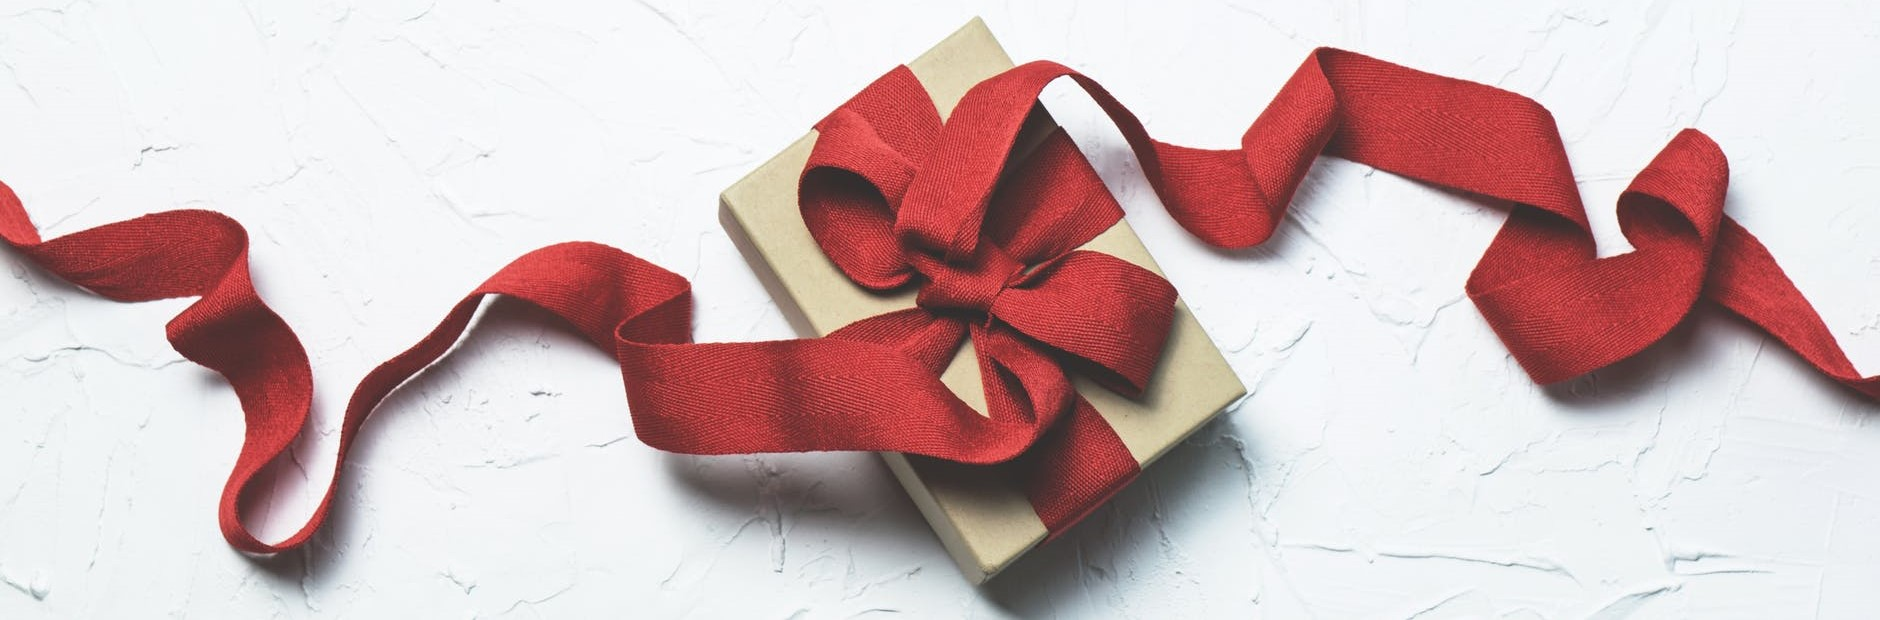 Red gift box with ribbon. Gifts for Christmas